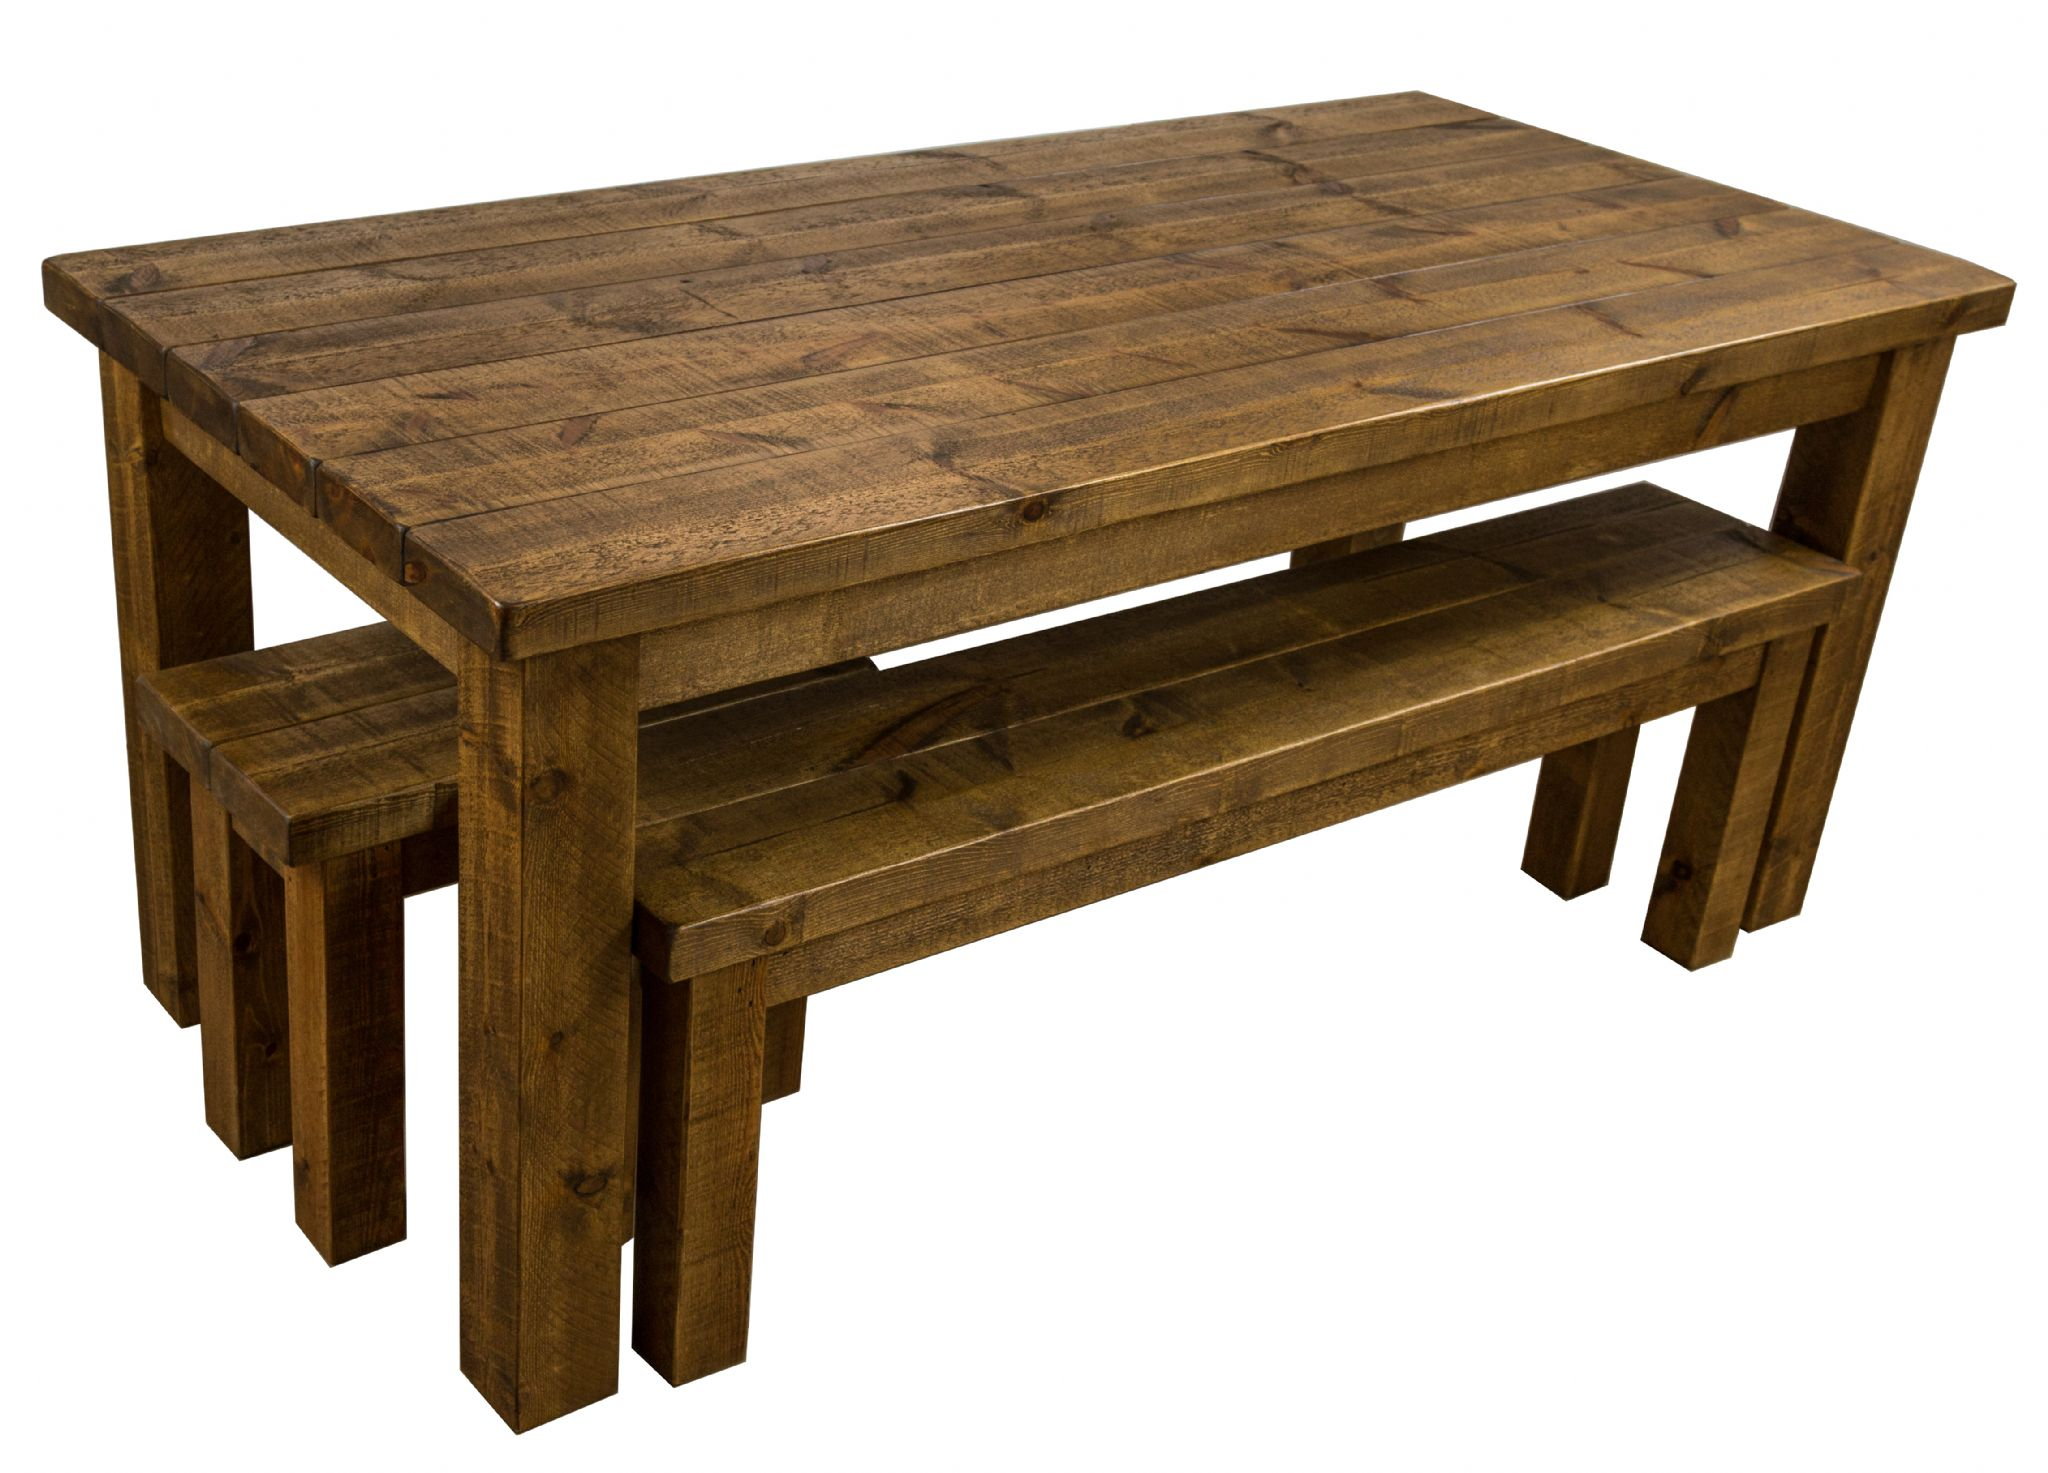 Tortuga rustic 6x3 wooden farmhouse dining table with 2 for Farmhouse dining table